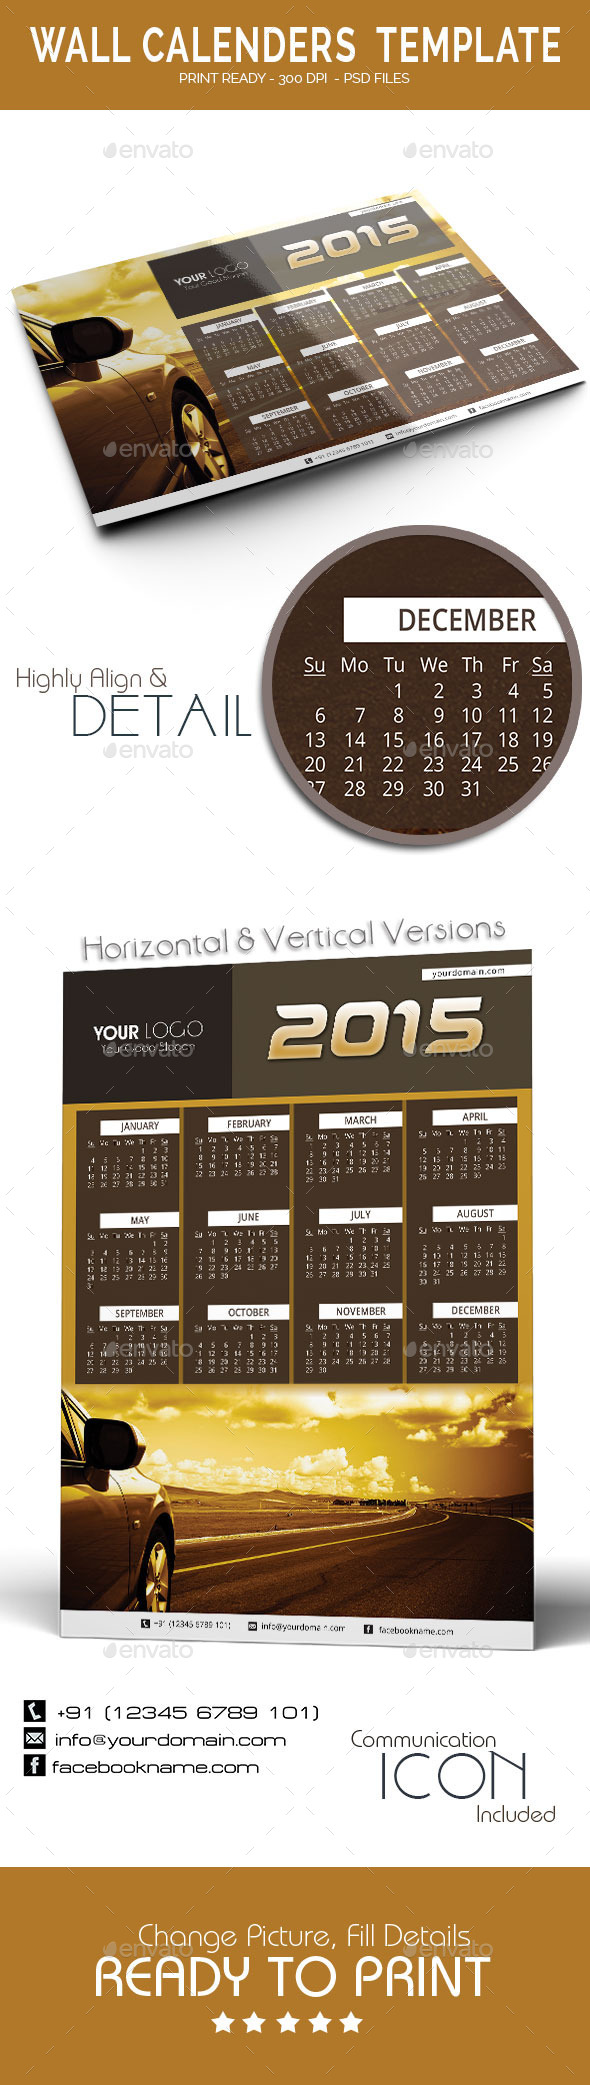 Calenders Templates 2015